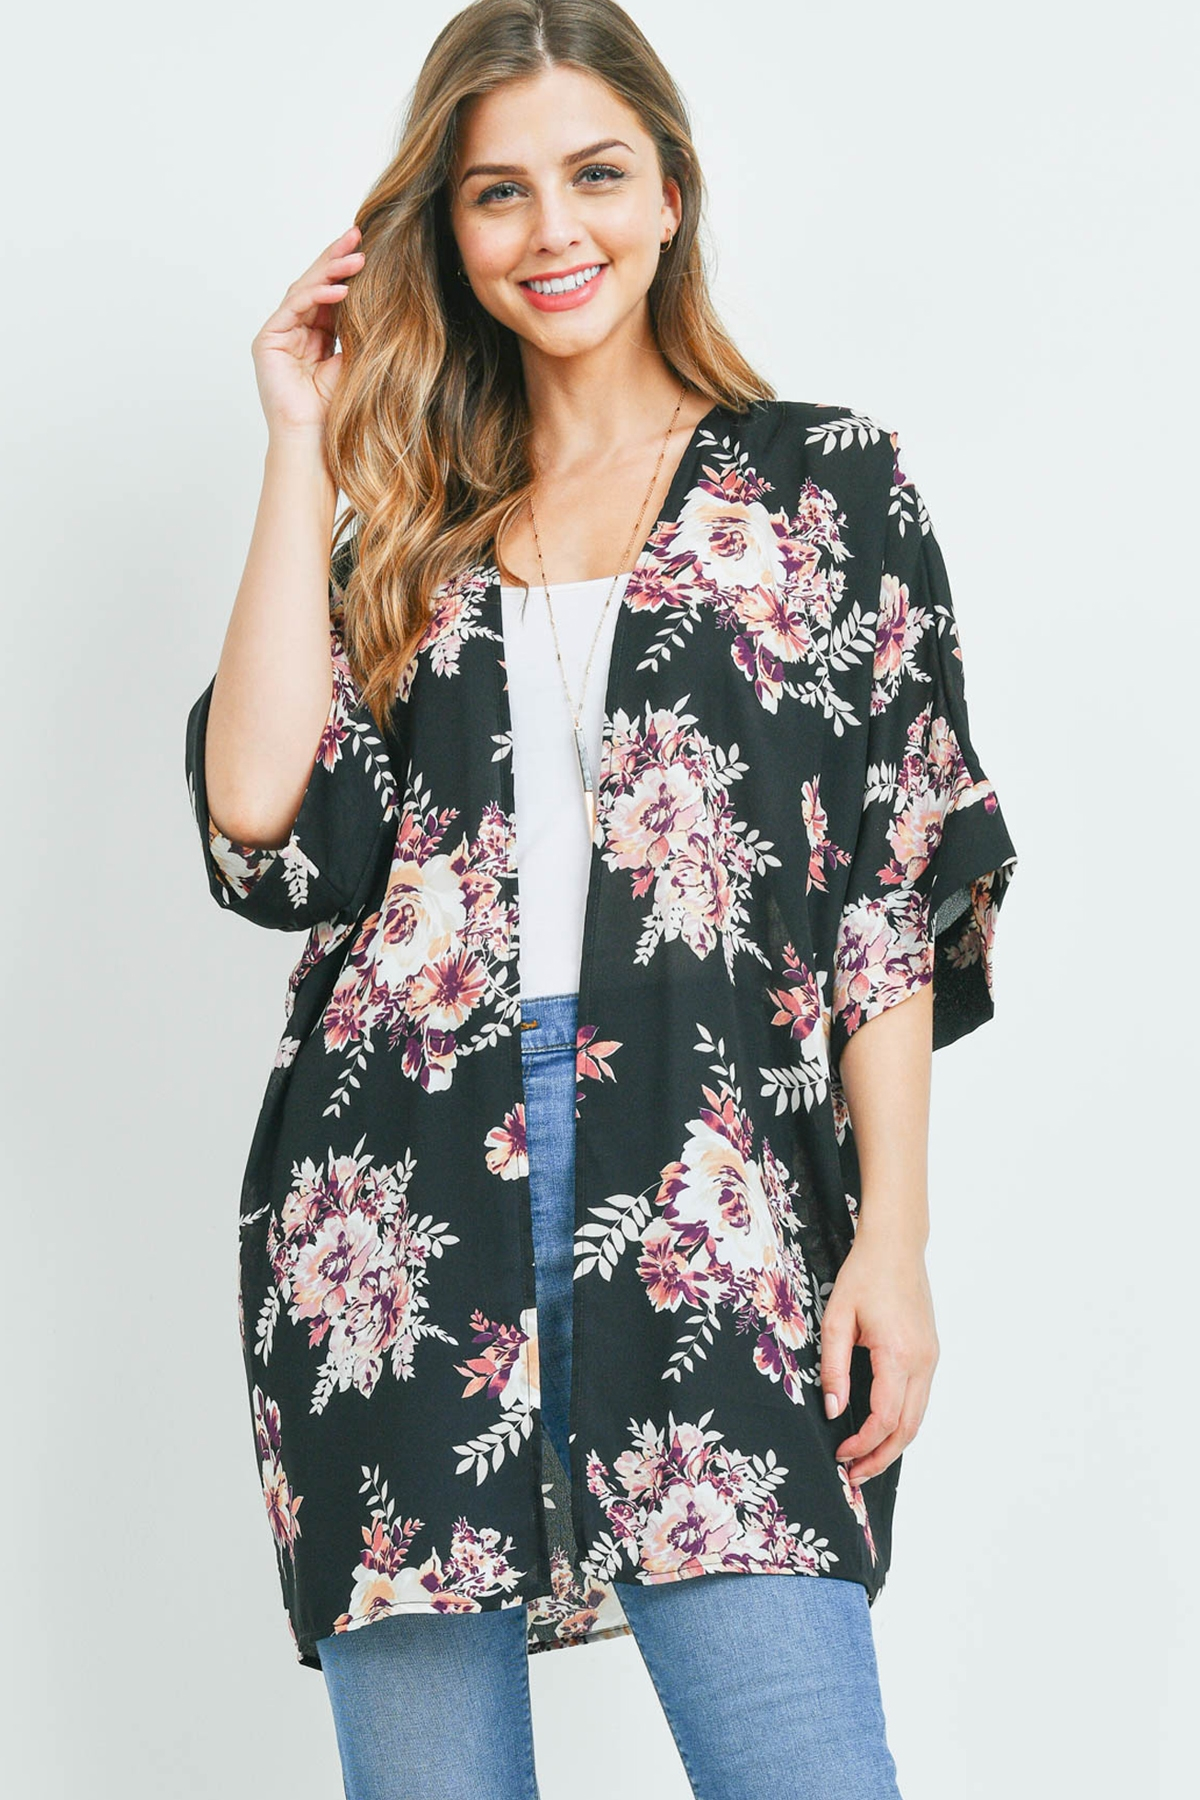 S16-4-3-PPC3014-BK - BELL SLEEVE FLORAL PRINT OPEN FRONT CARDIGAN- BLACK 1-2-2-2